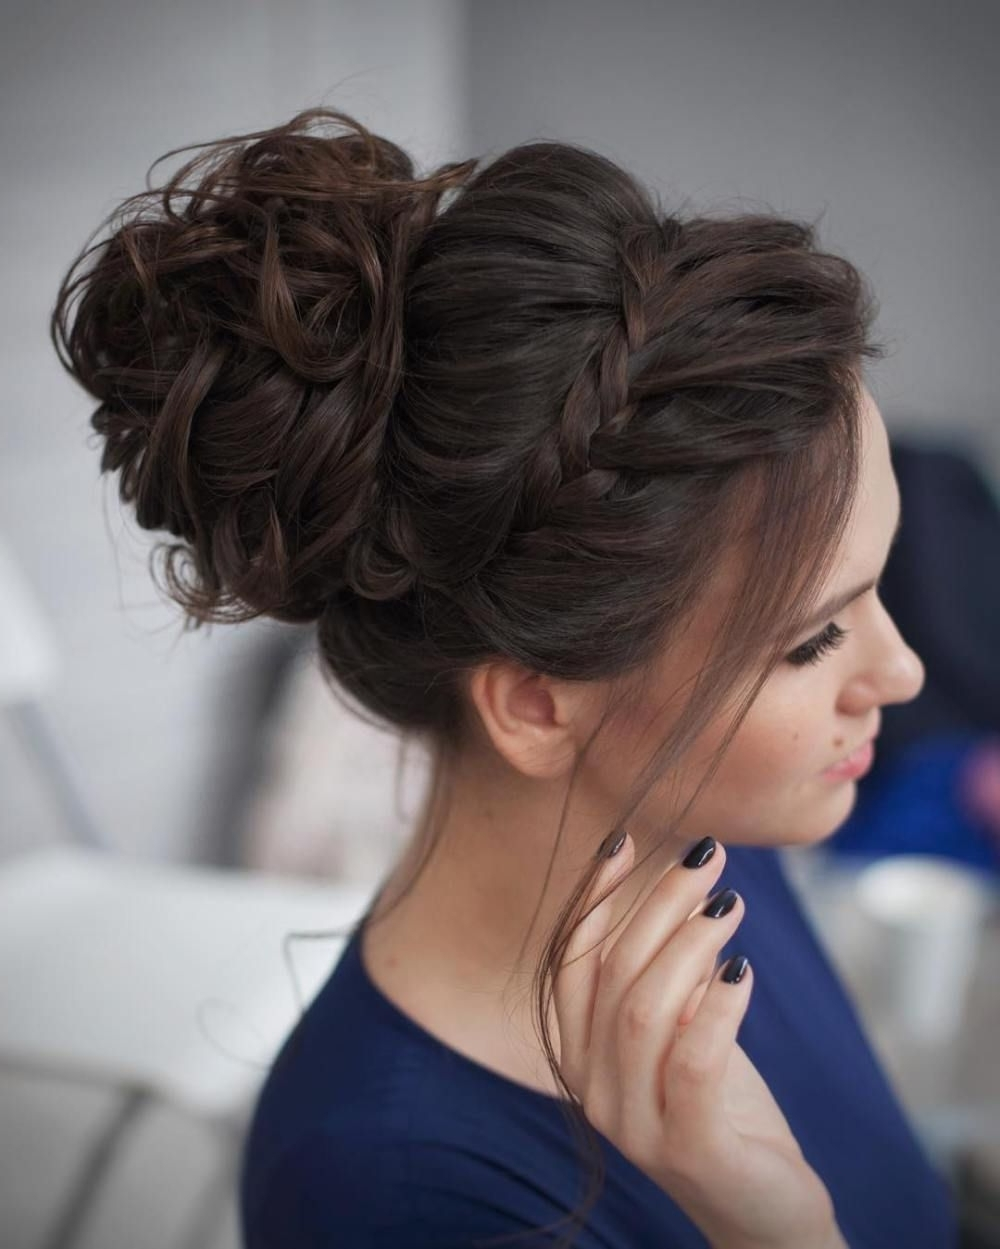 40 Most Delightful Prom Updos For Long Hair In 2018 | Updo, Prom And Inside Prom Updo Hairstyles For Long Hair (View 2 of 15)